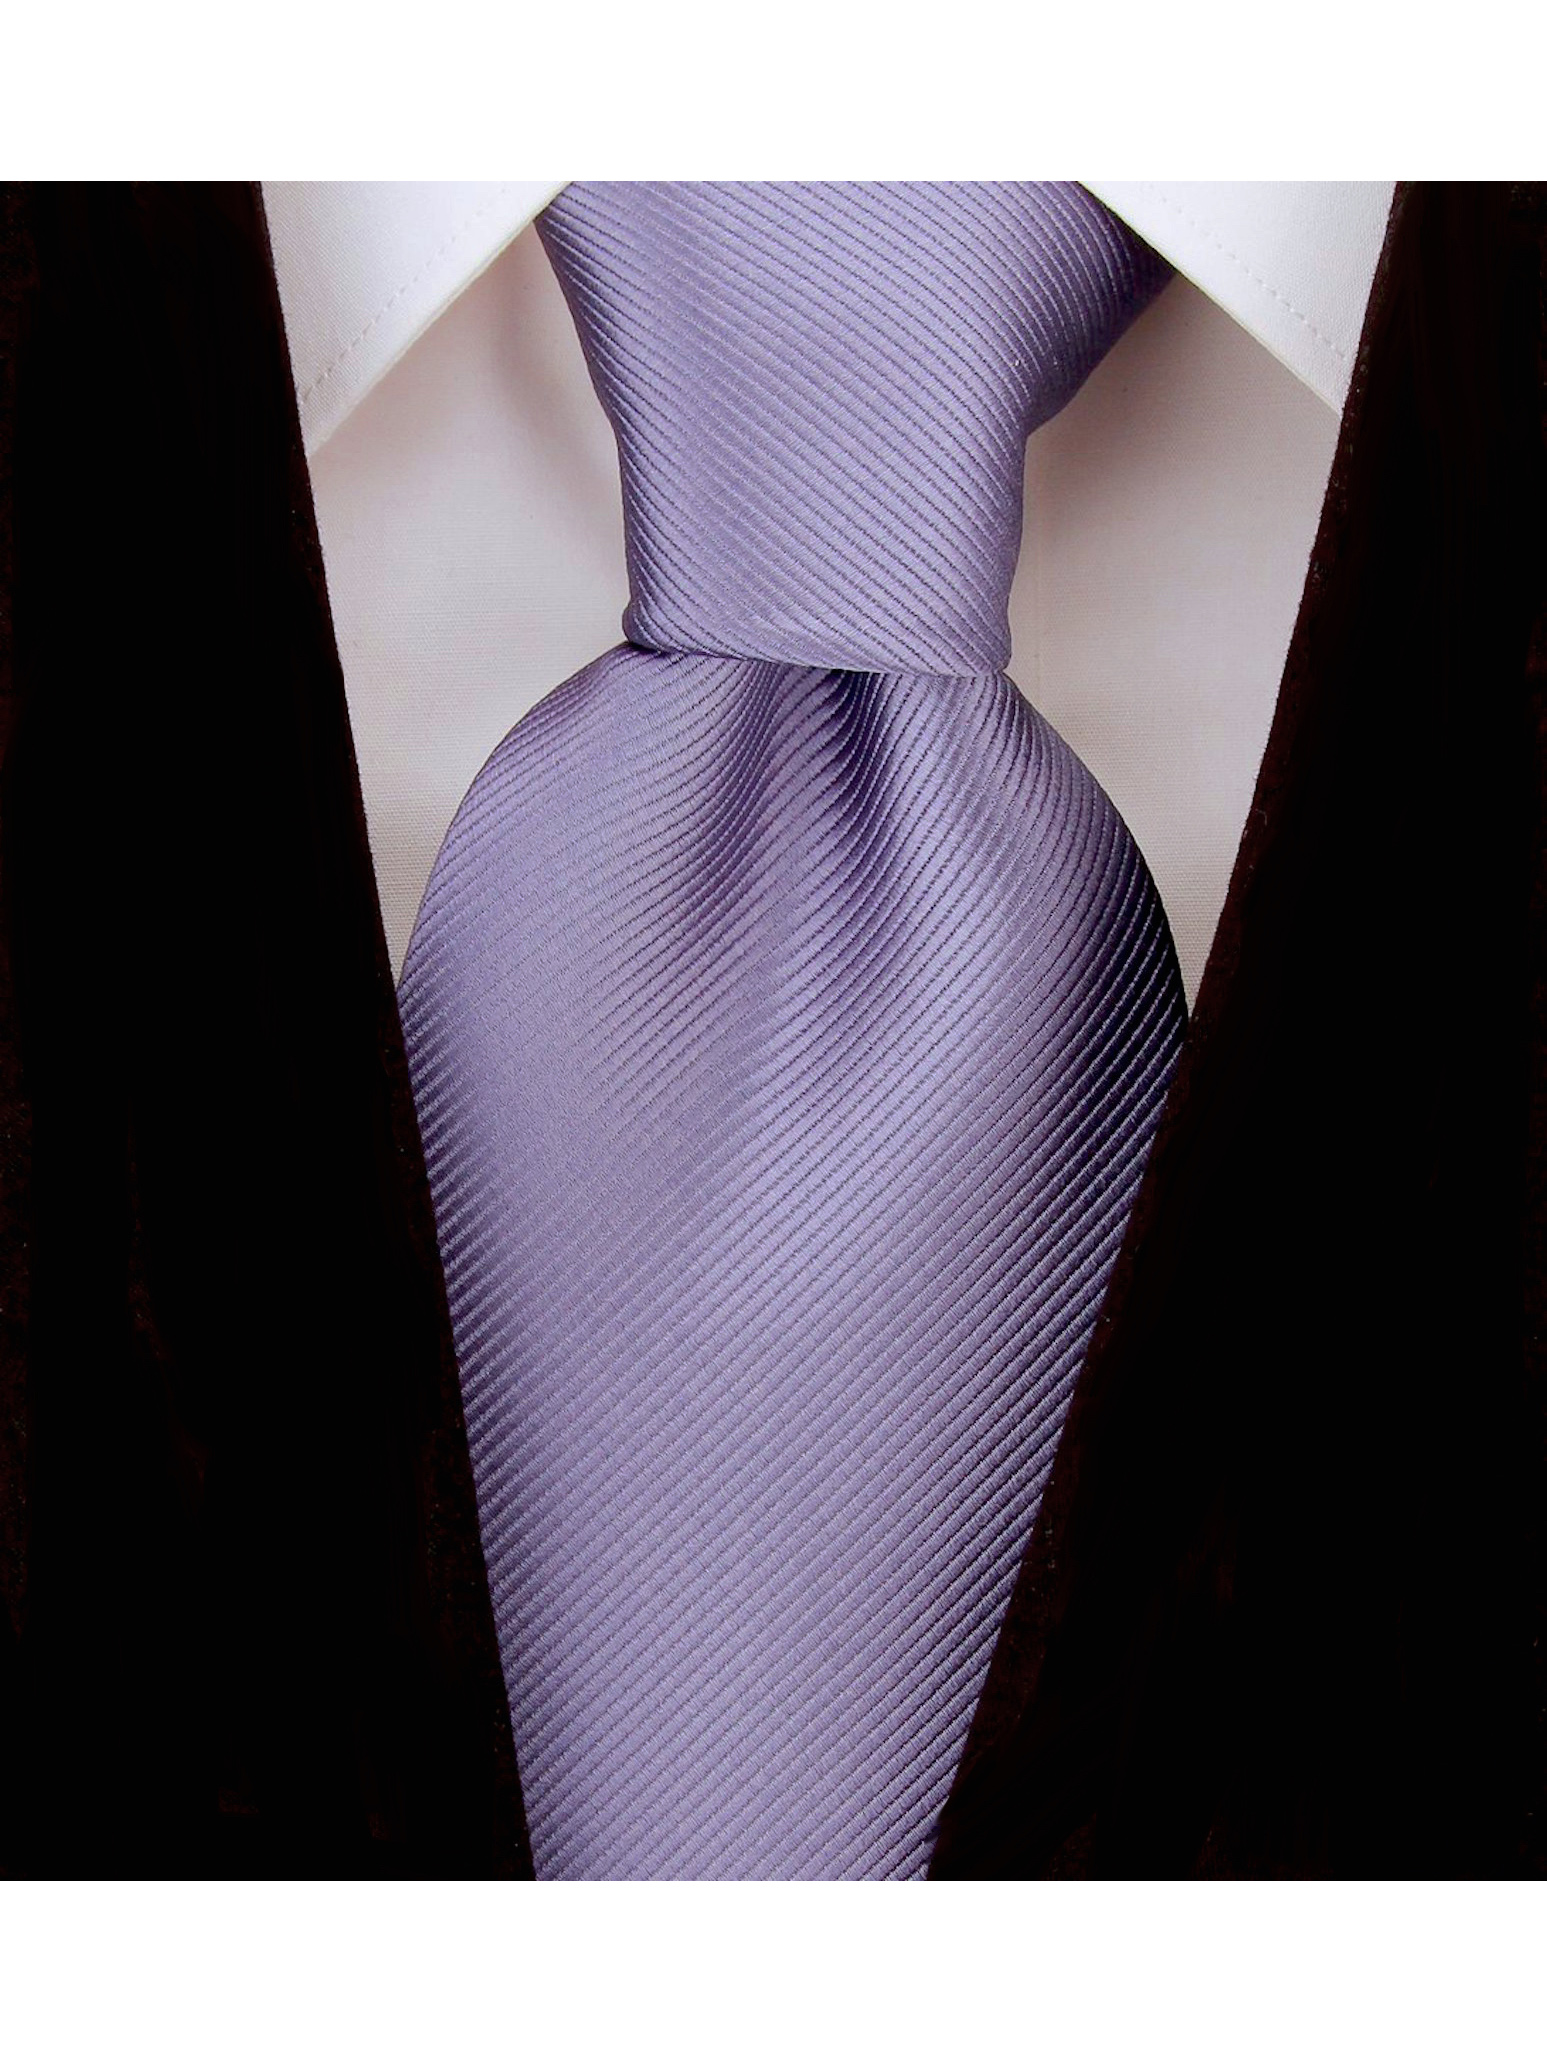 Scott-Allan-Mens-Twill-Striped-Necktie thumbnail 9